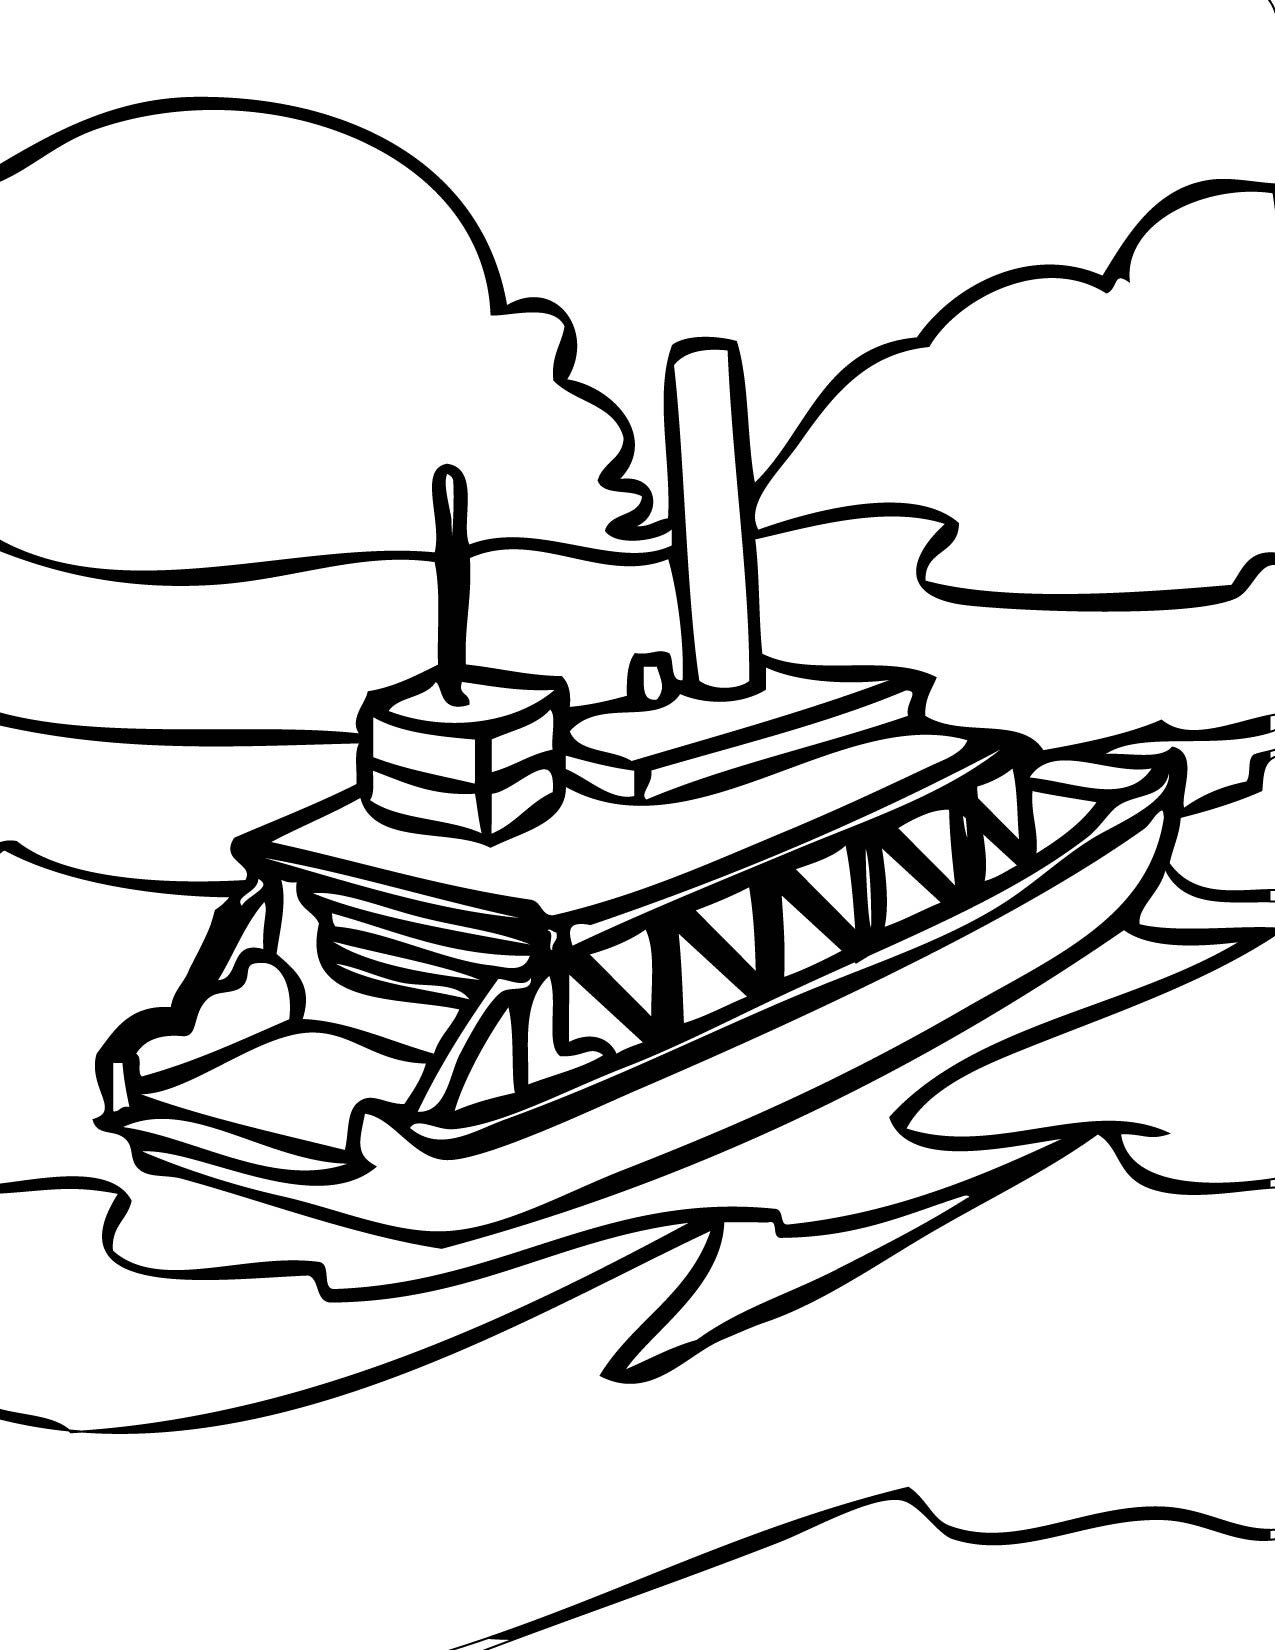 1275x1650 Boat Transportation Coloring Pages For Kids Elegant Elegant Speed